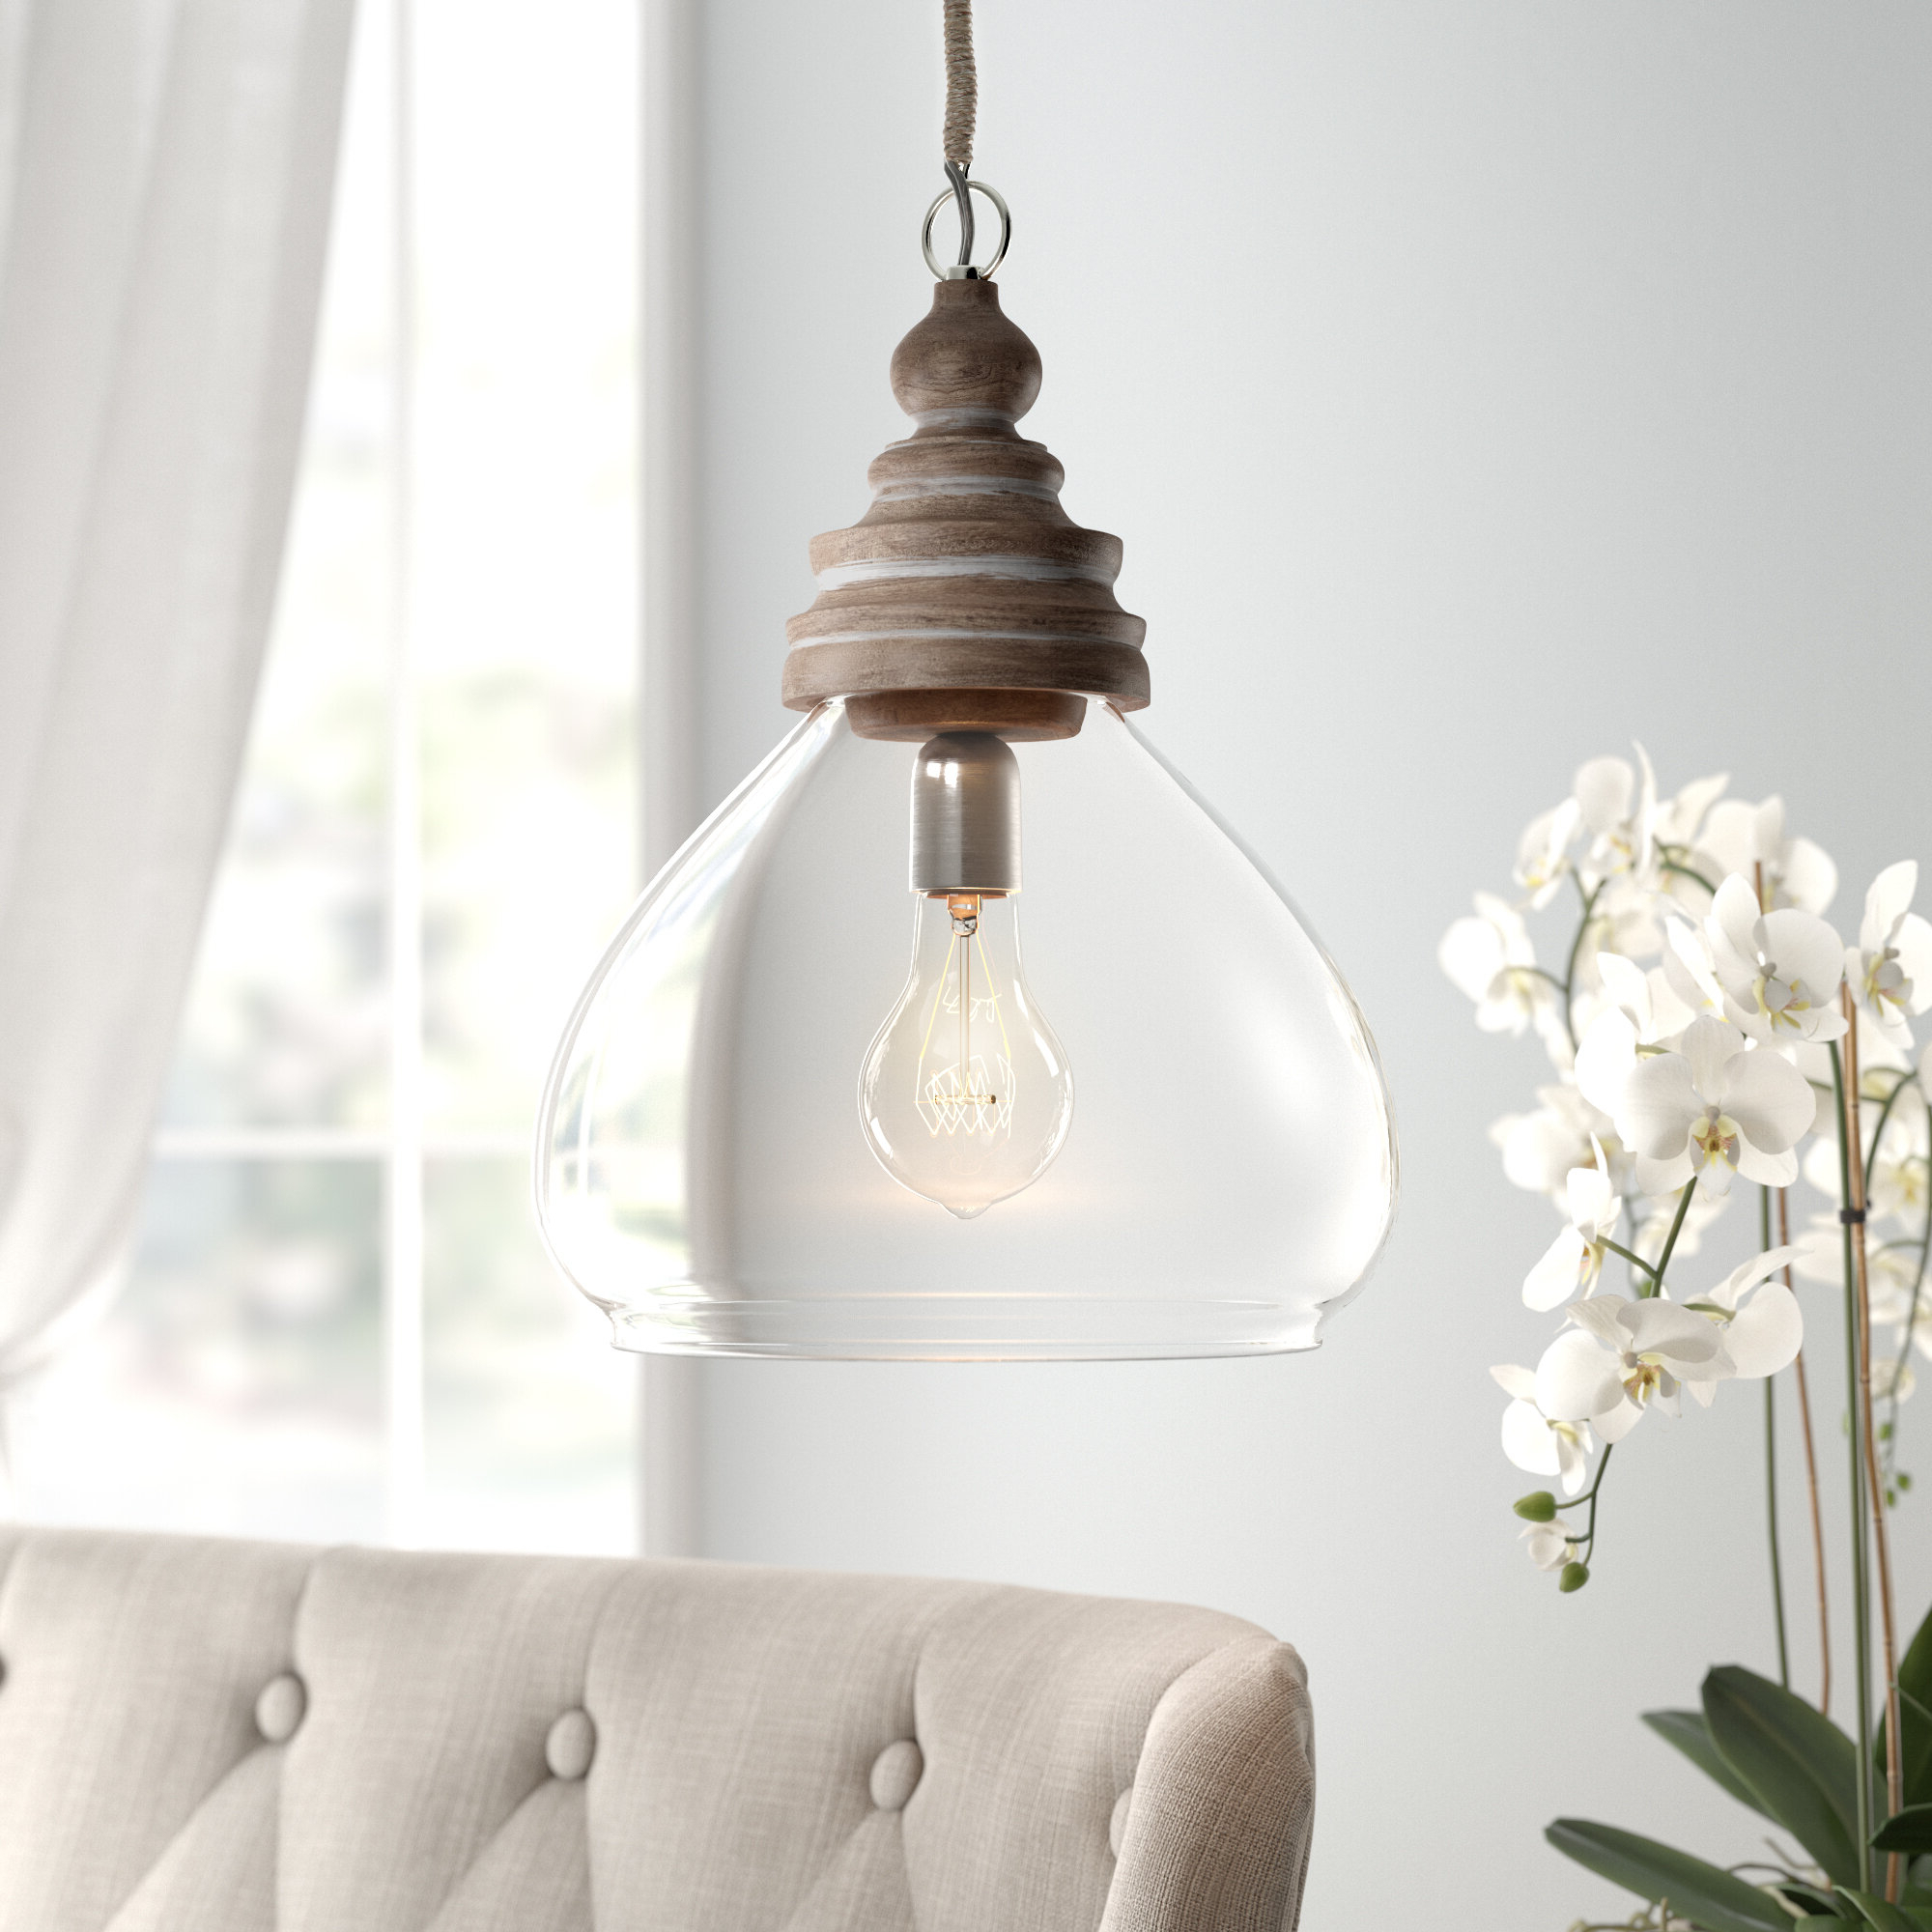 1 Light Single Dome Pendants With Regard To Well Liked Brisa 1 Light Single Dome Pendant (View 5 of 20)